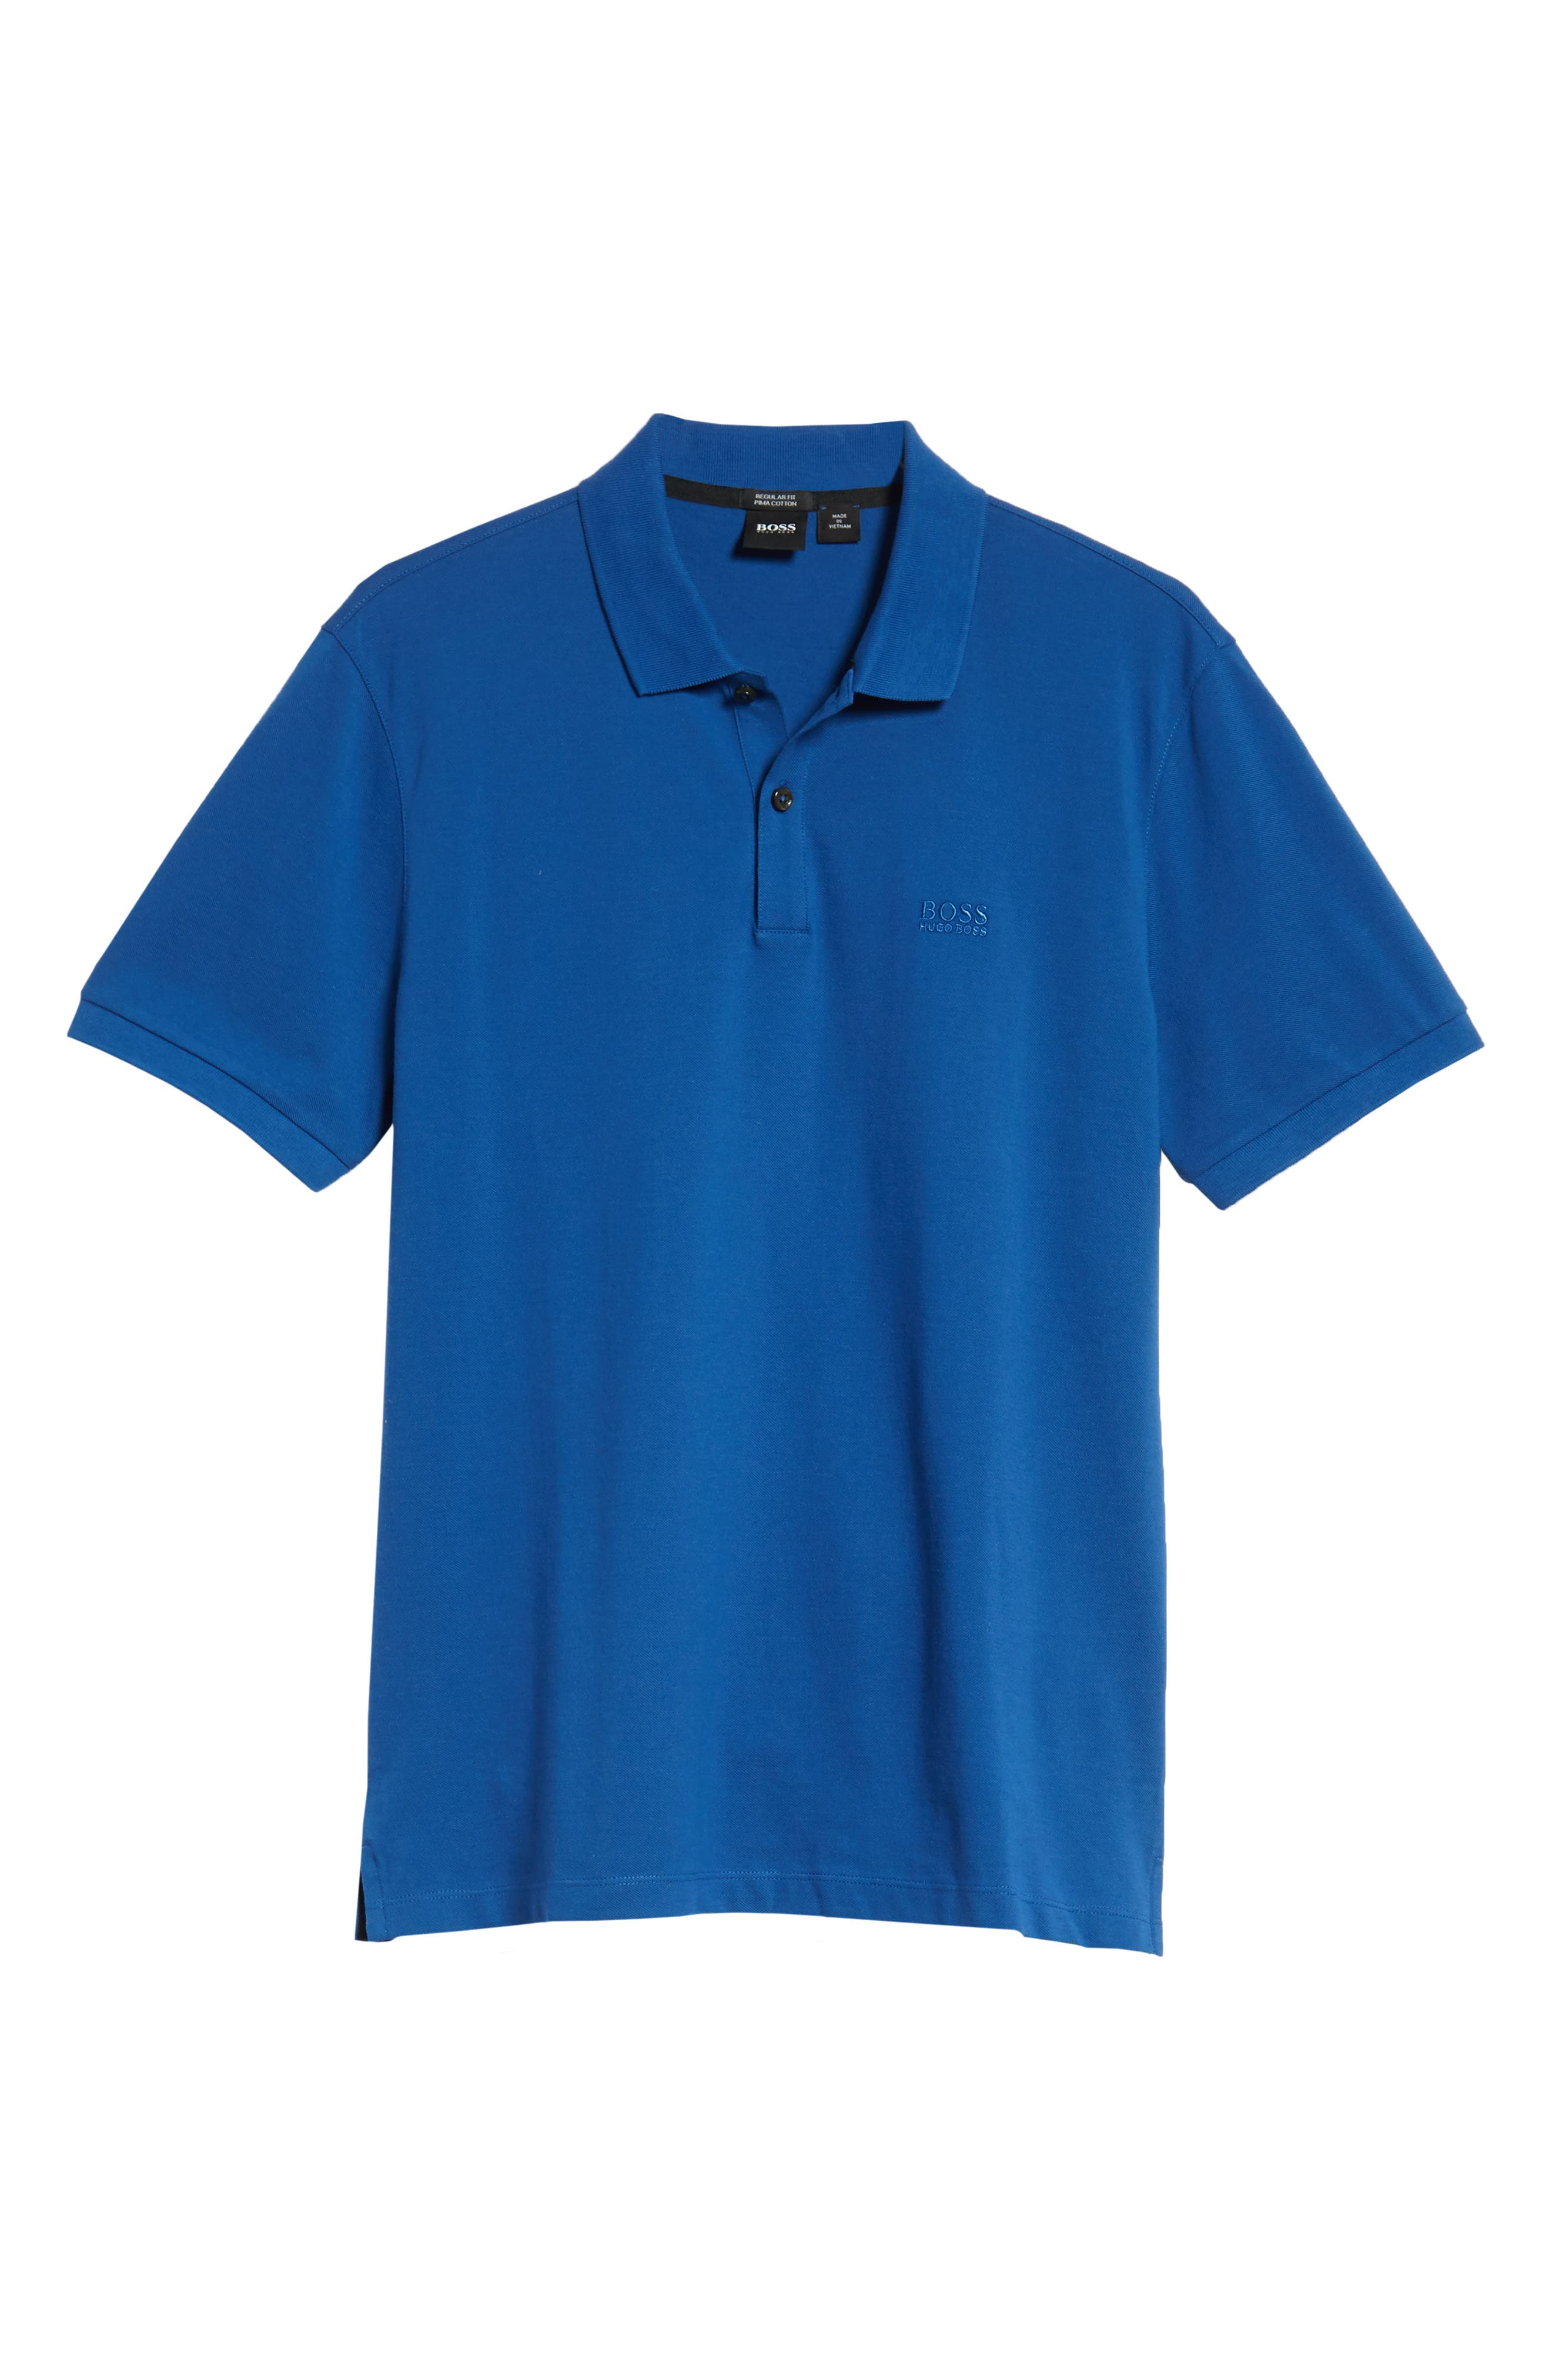 'Pallas' Regular Fit Logo Embroidered Polo Shirt,                             Alternate thumbnail 6, color,                             Open Blue